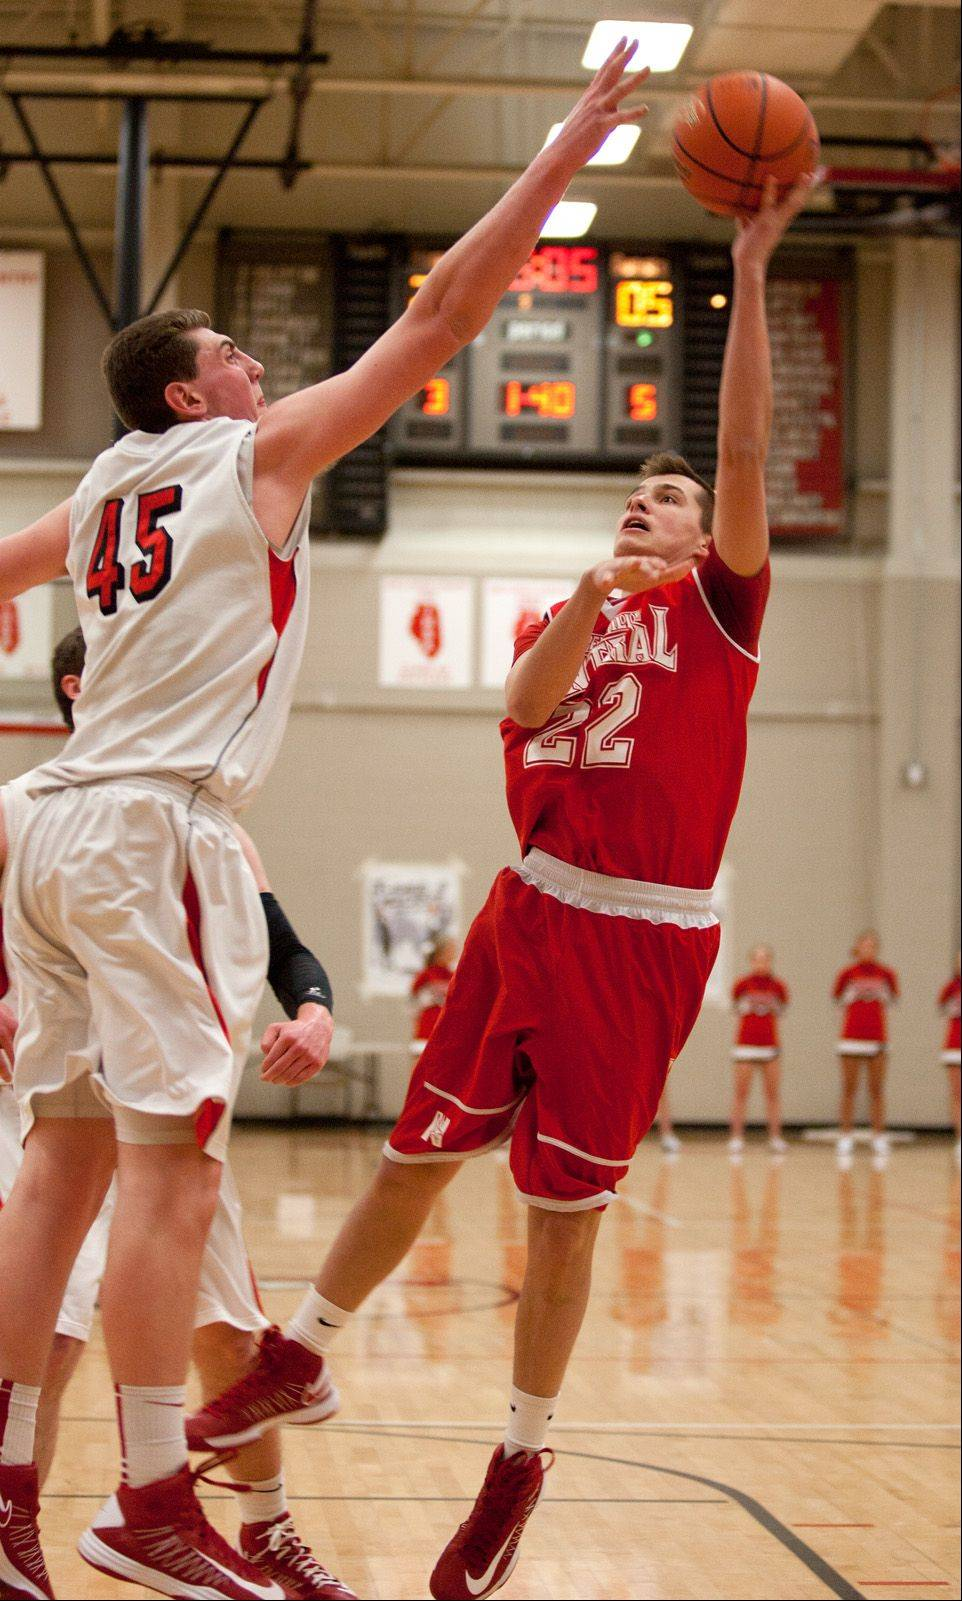 Naperville Central's Taylor Zelinski, right, shoots over Benet's Sean O'Mara, during regional action in Lisle.